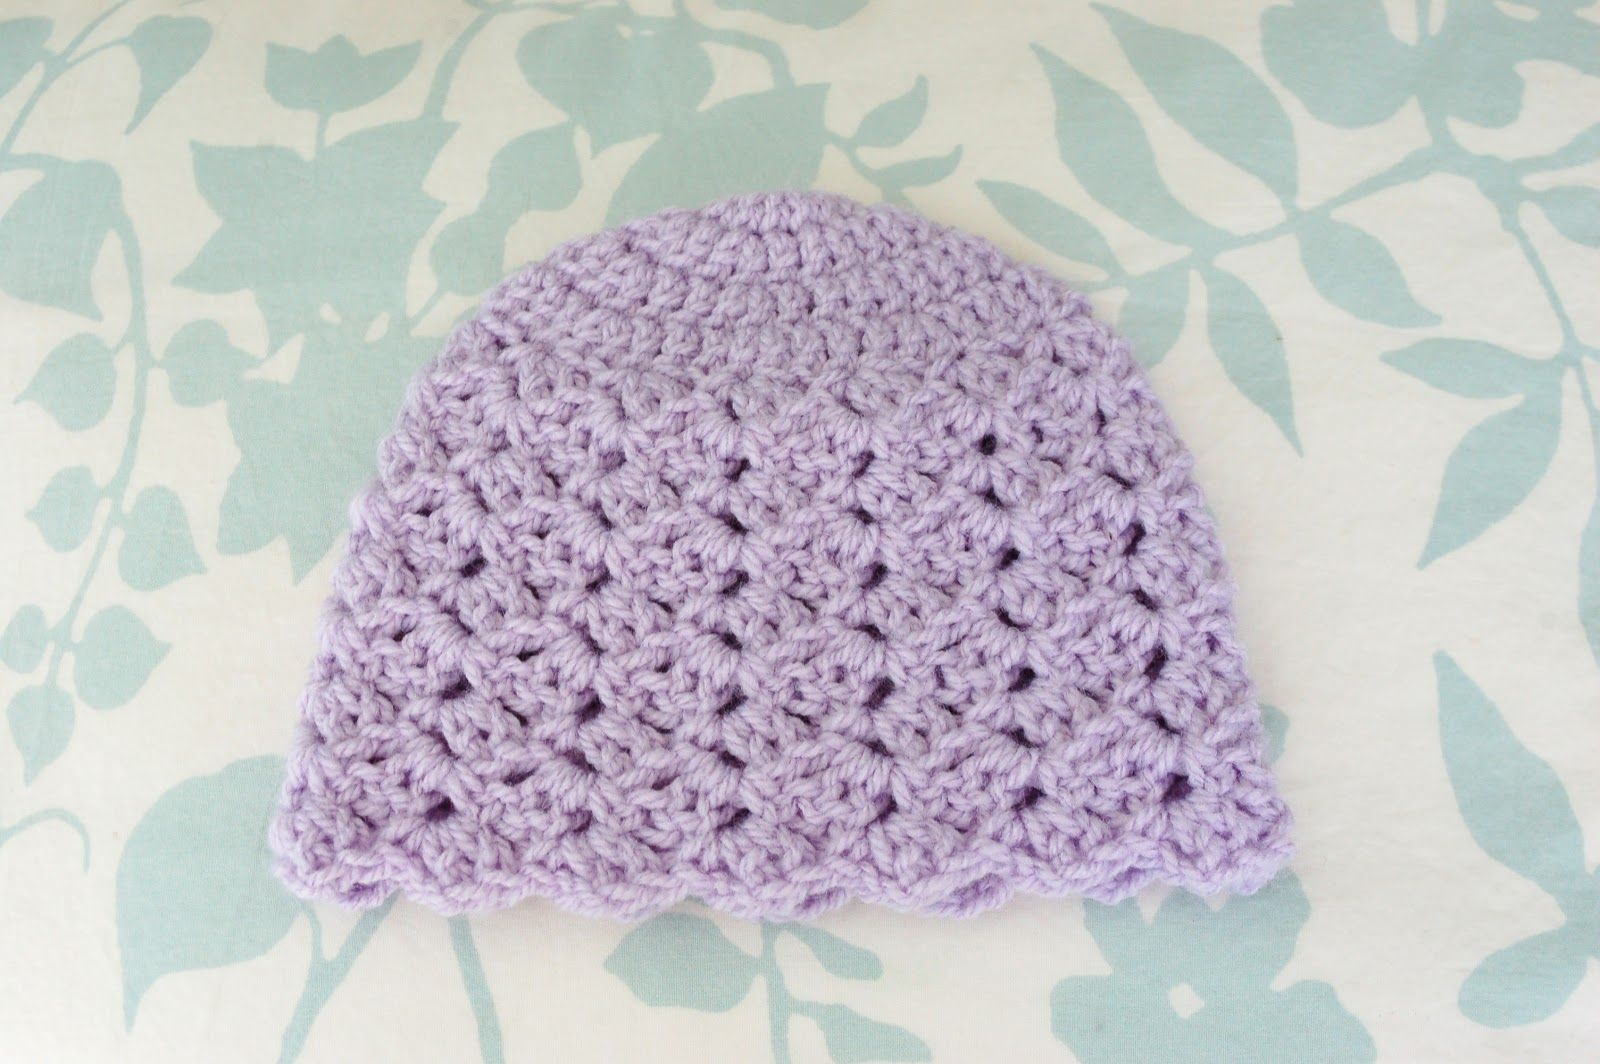 crochet baby hats patterns | dc double crochet sc single crochet sl ...